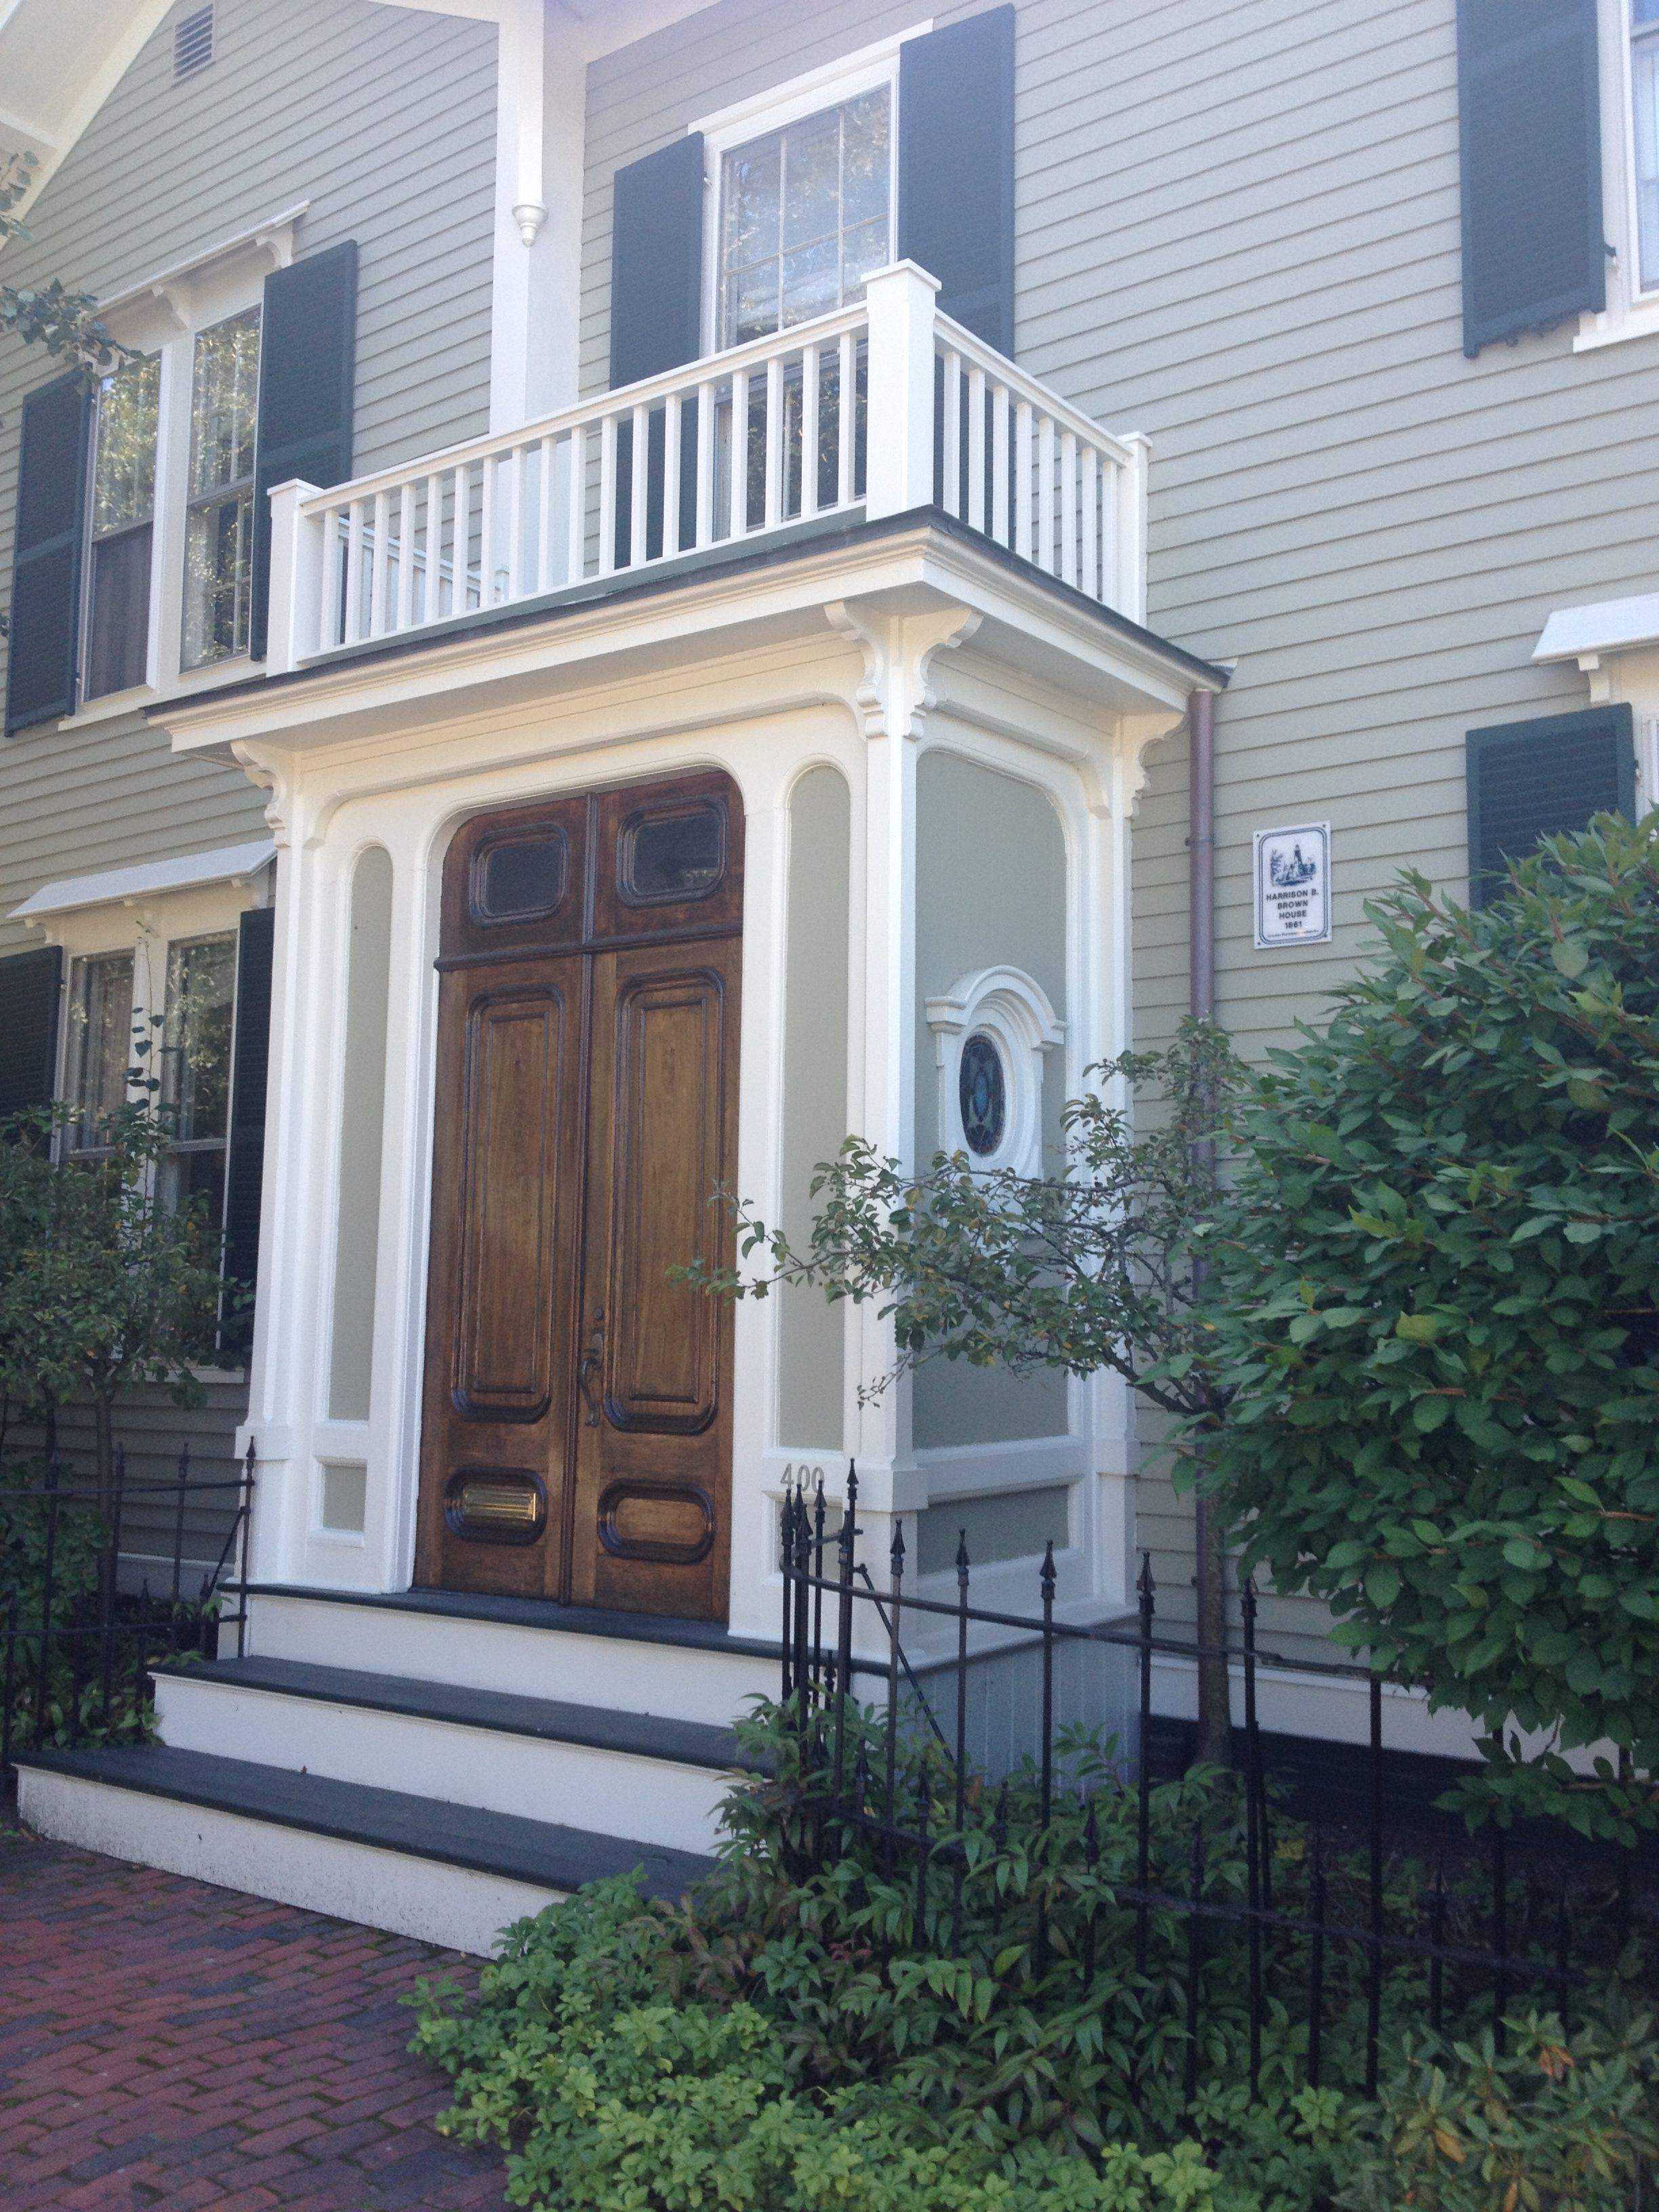 Classic enclosed small front porch with top railing and